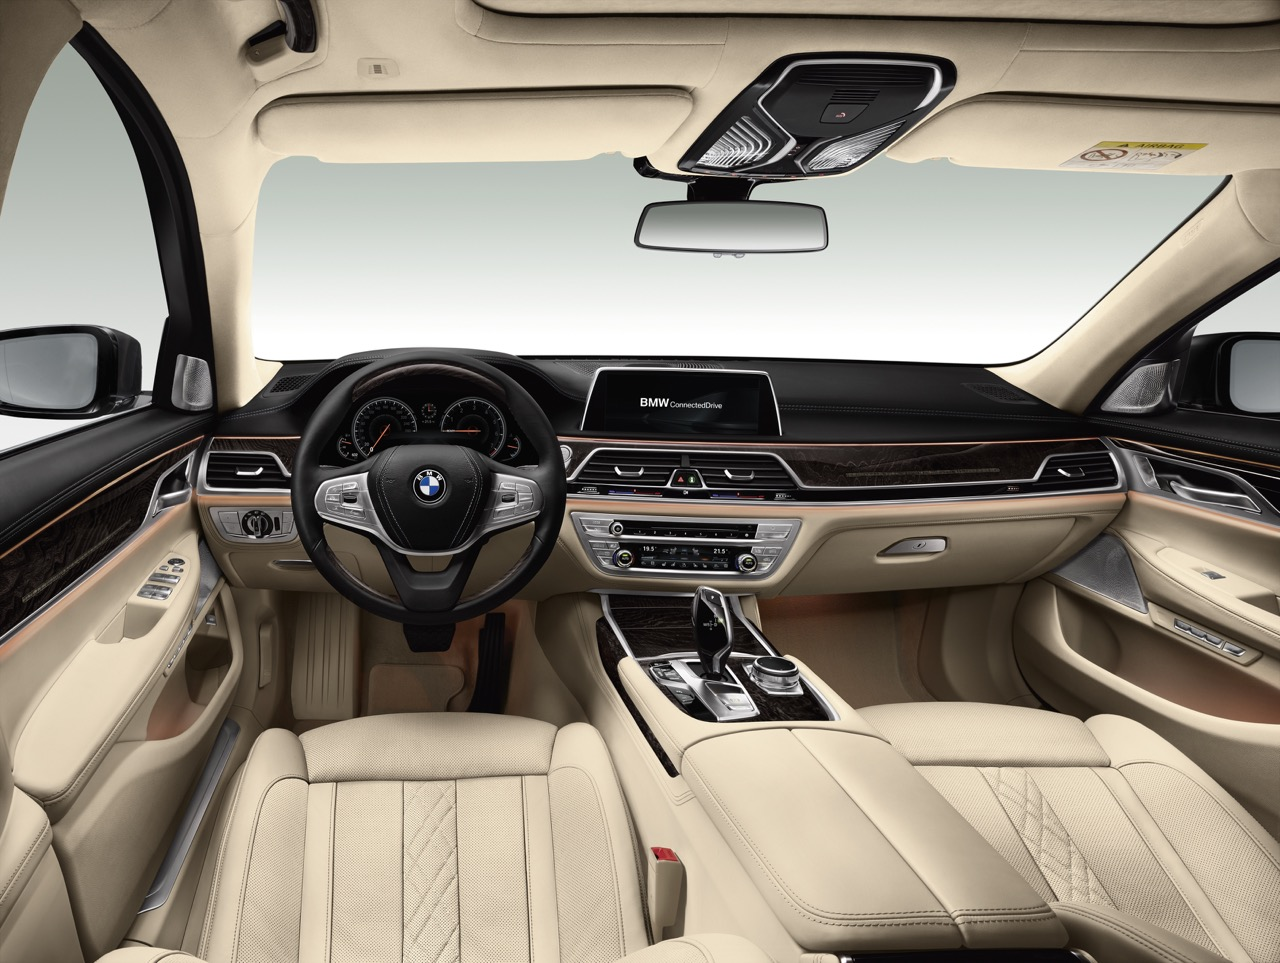 superb-design-of-the-grey-seats-ideas-with-black-and-grey-dash-as-the-bmw-7-series-2015-interior